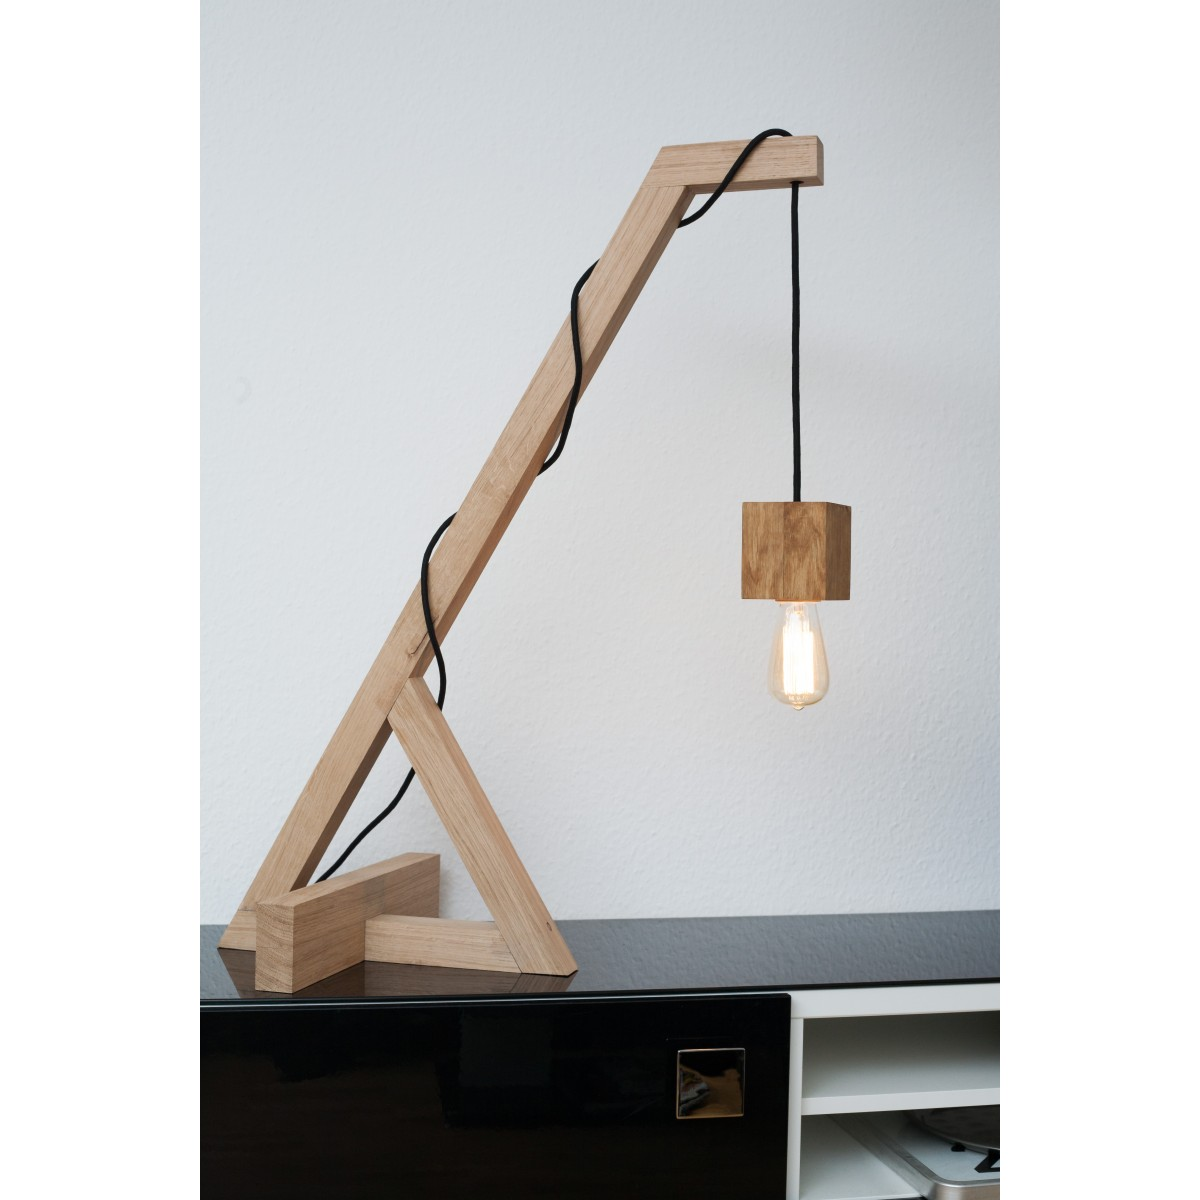 Stehlampe Aus Holz Stehlampe Holz Ikea Stehlampe Ikea Holz Gebraucht Ikea